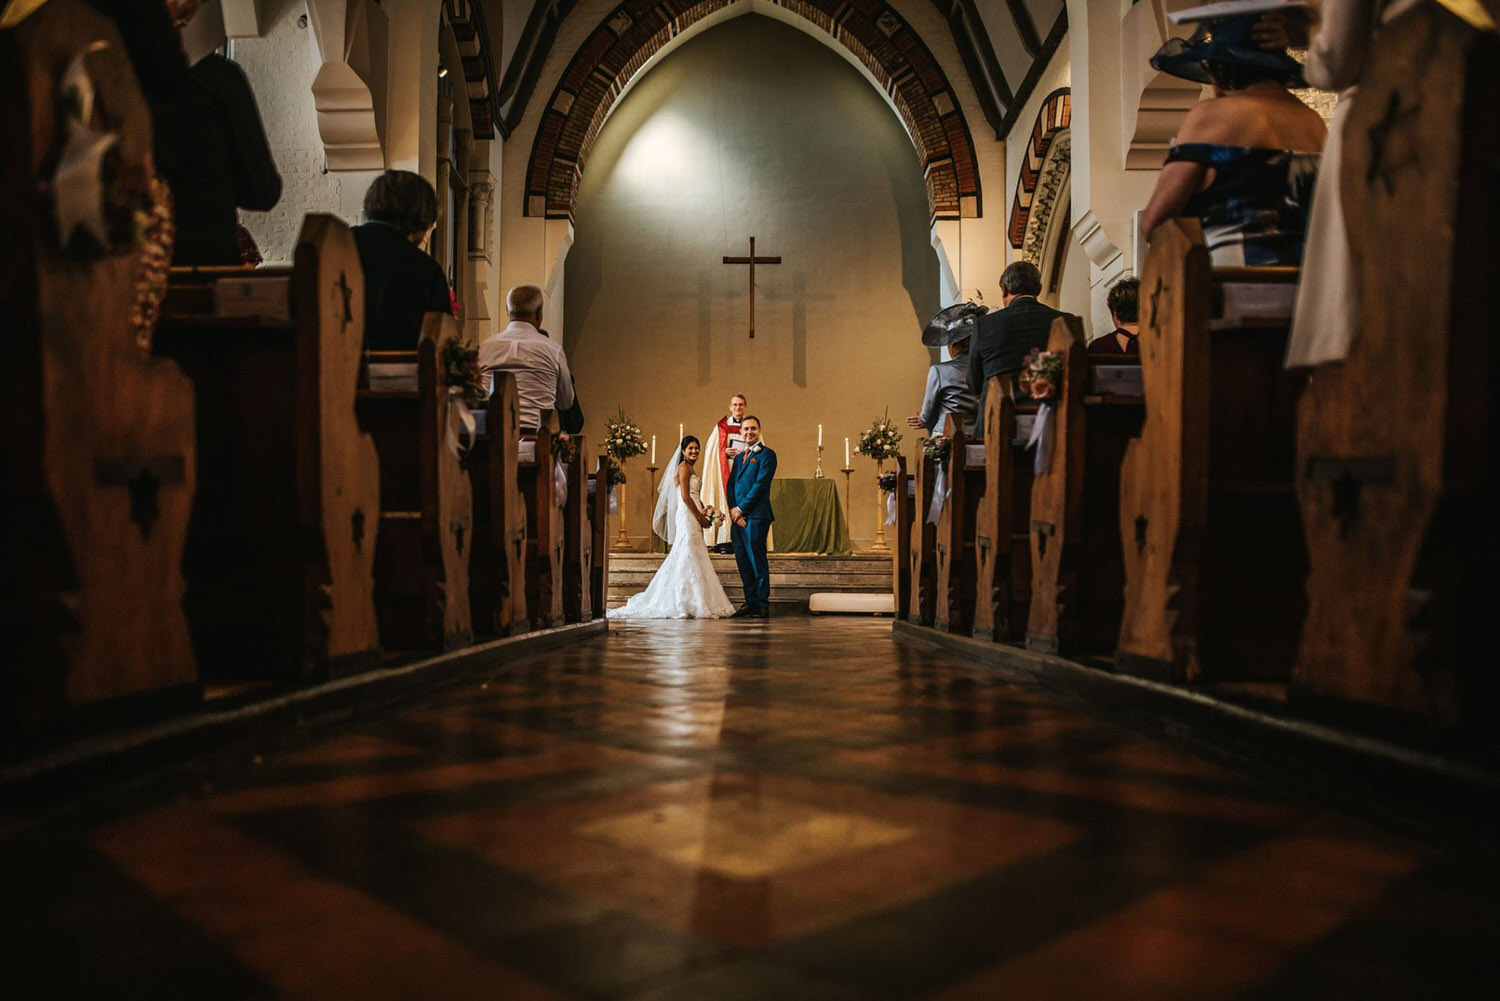 United-Benefice-of-Holland-Park-Church-Services-StG-StJ-Wedding-Image-No-2.jpg